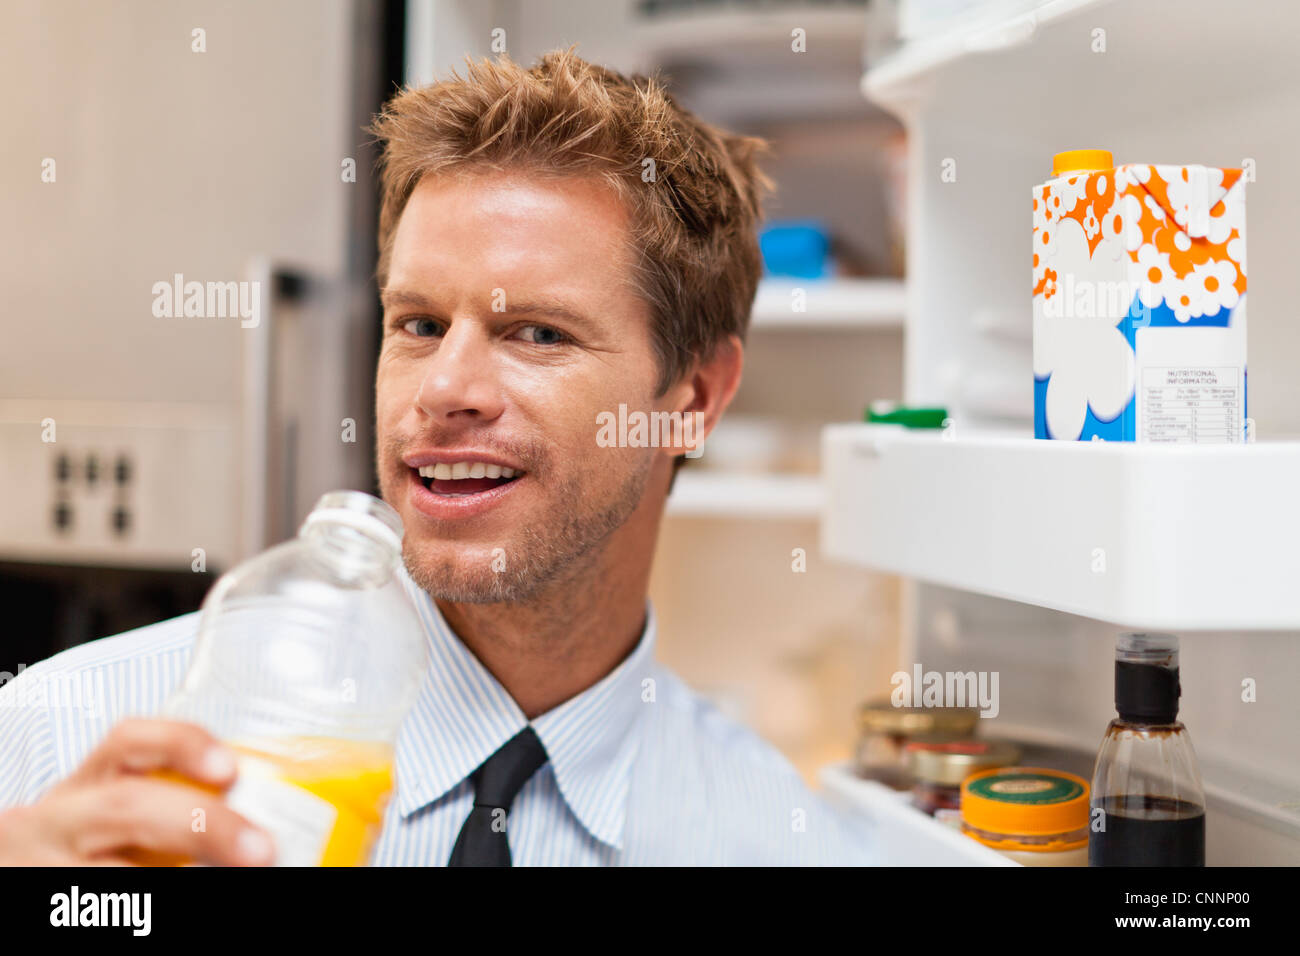 Man drinking juice out of pitcher - Stock Image